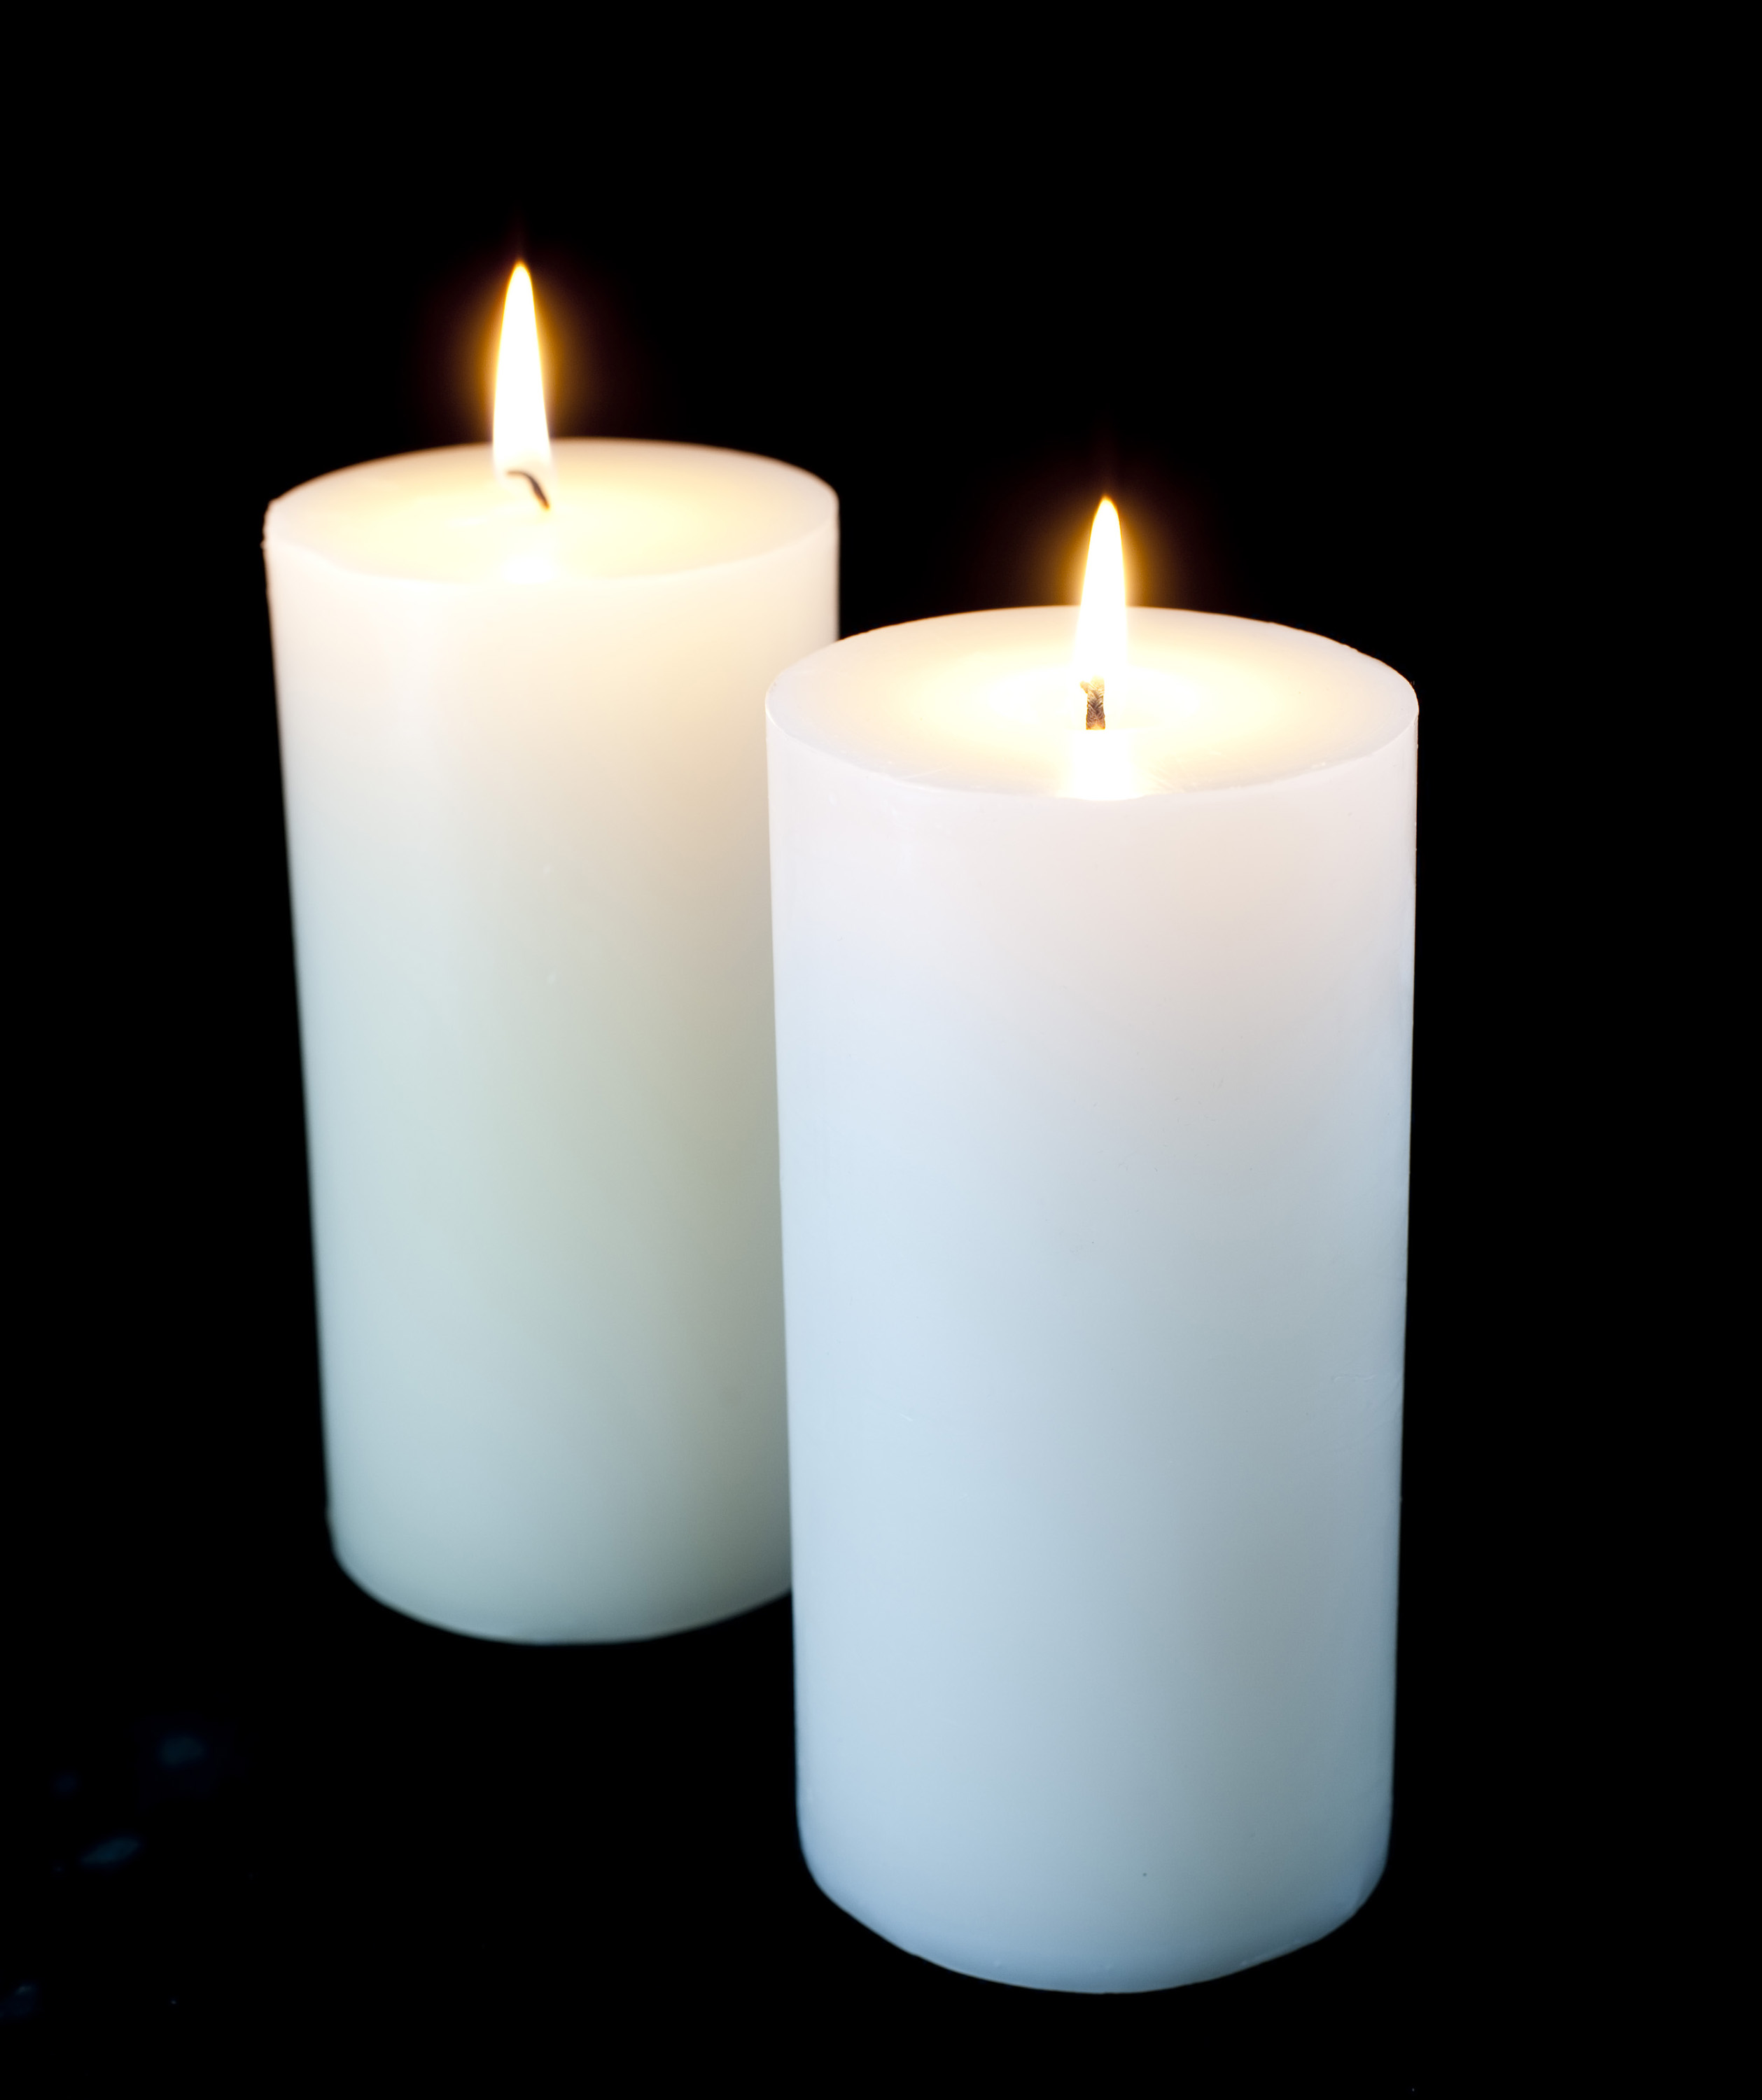 Bougie Led Gifi Burning Candle Png Hd Transparent Burning Candle Hd Png